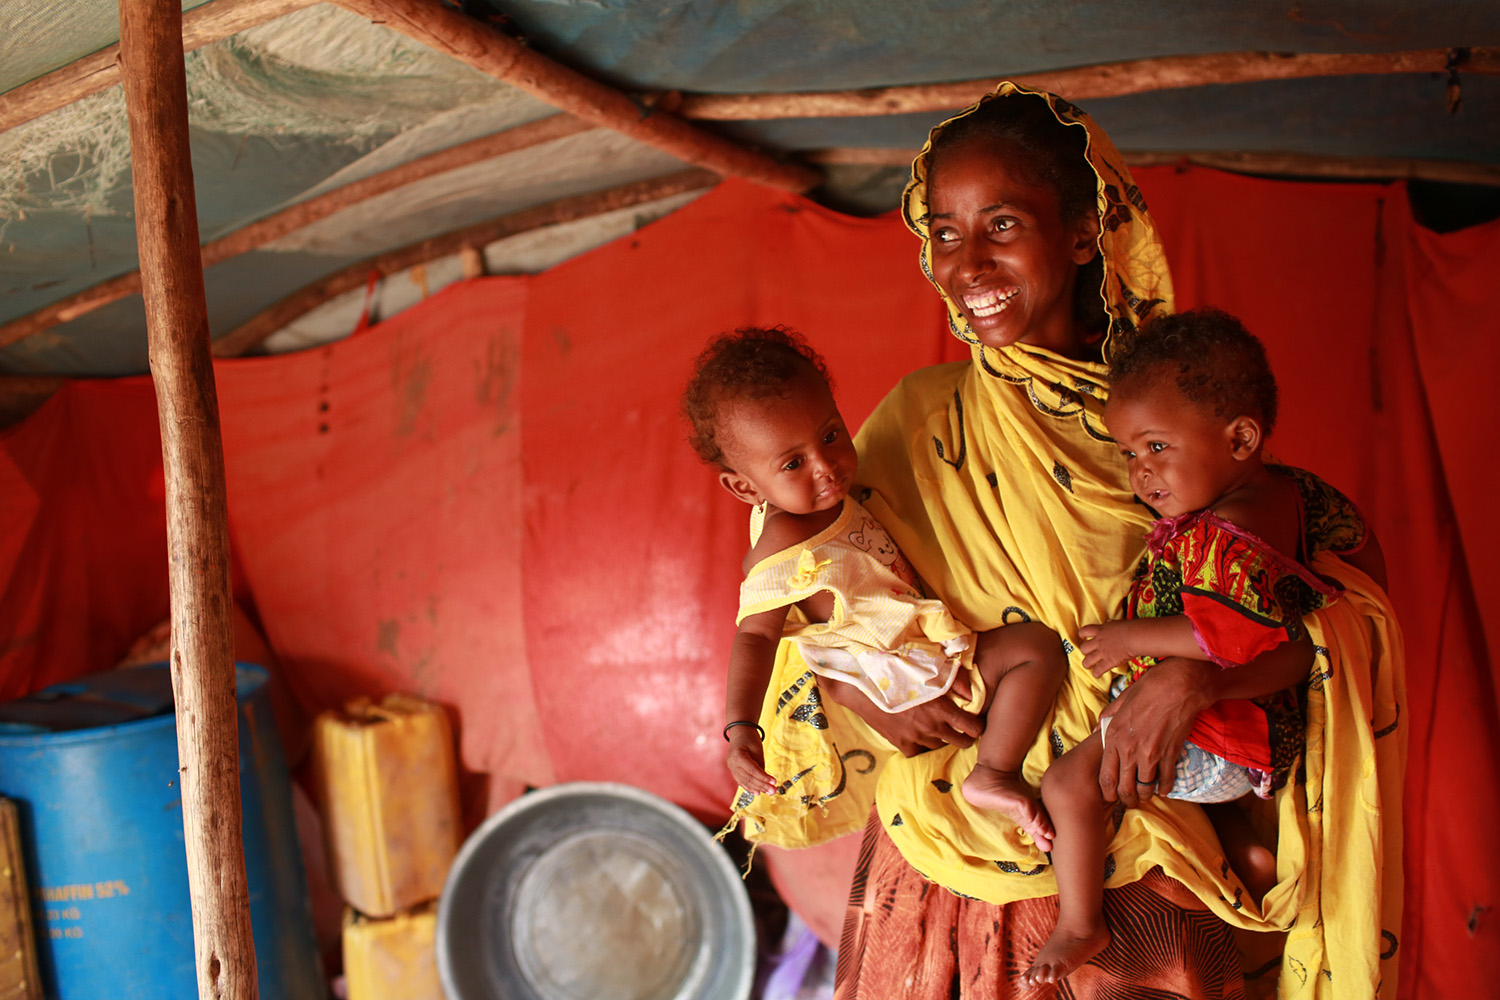 Photographing for UNICEF in Djibouti... 19 year old Maria Abdullahi, who looks after her own child, Nouria, and her cousin's child, Maysun, both 9 months old, living in a tent in a refugee camp in the desert in Djibouti, East Africa - they are refugees from Somalia. Maysun's own mother abandoned her, and Maria took her in, breastfeeding her along with her own daughter. She does the whole thing with such grace and humour, and so few resources. Total inspiration.